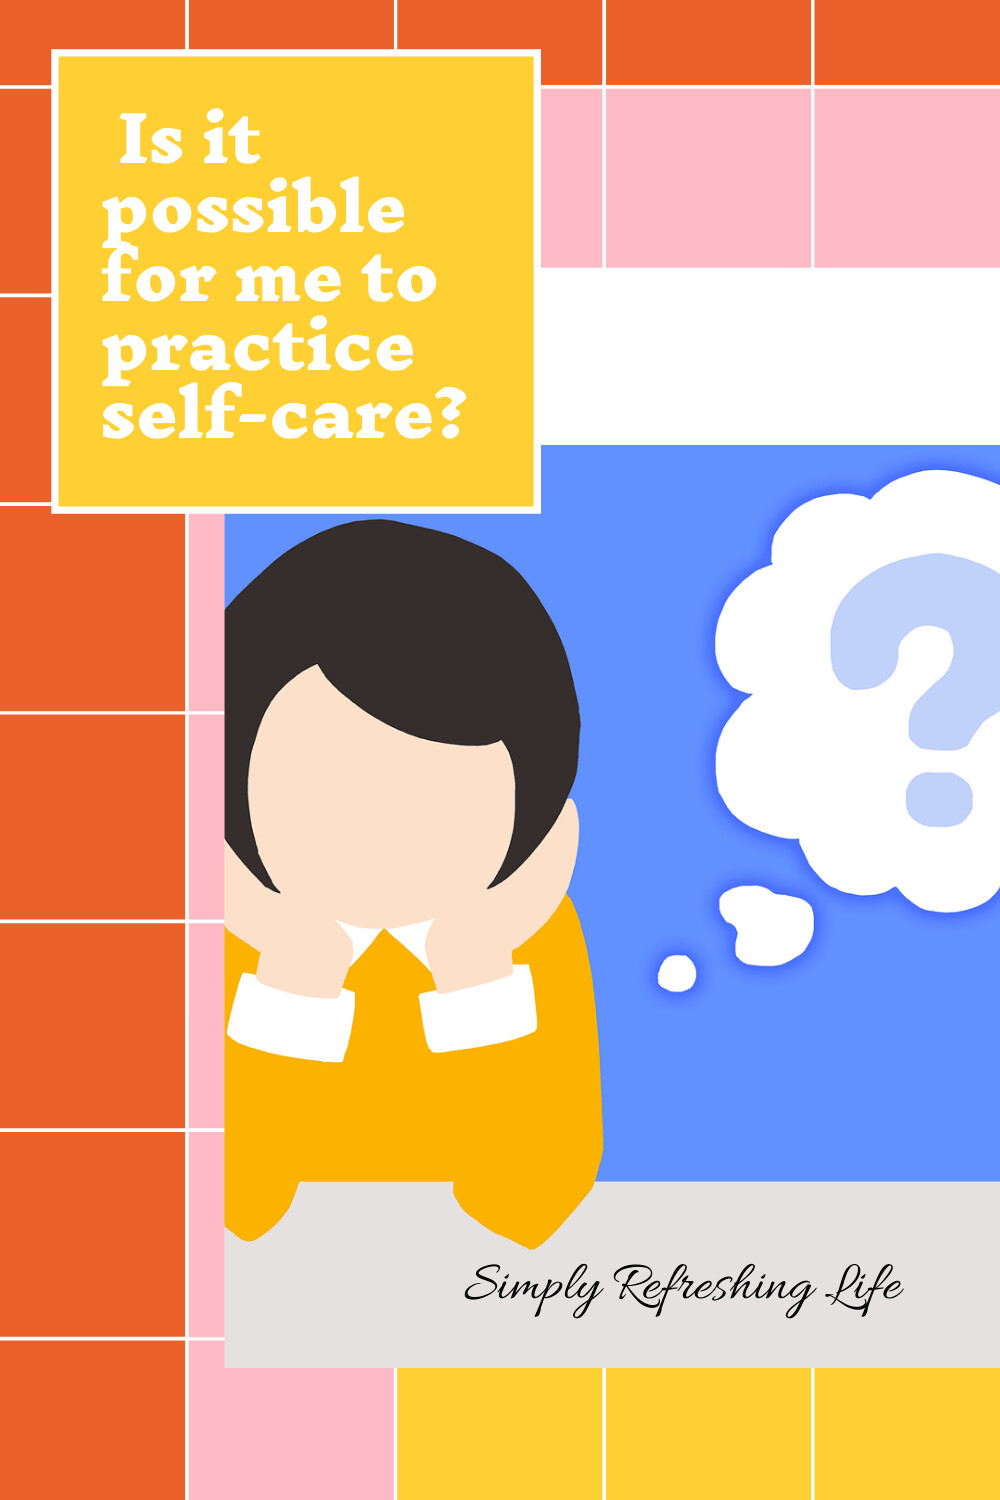 Is it Possible for me to Practice Self-Care?